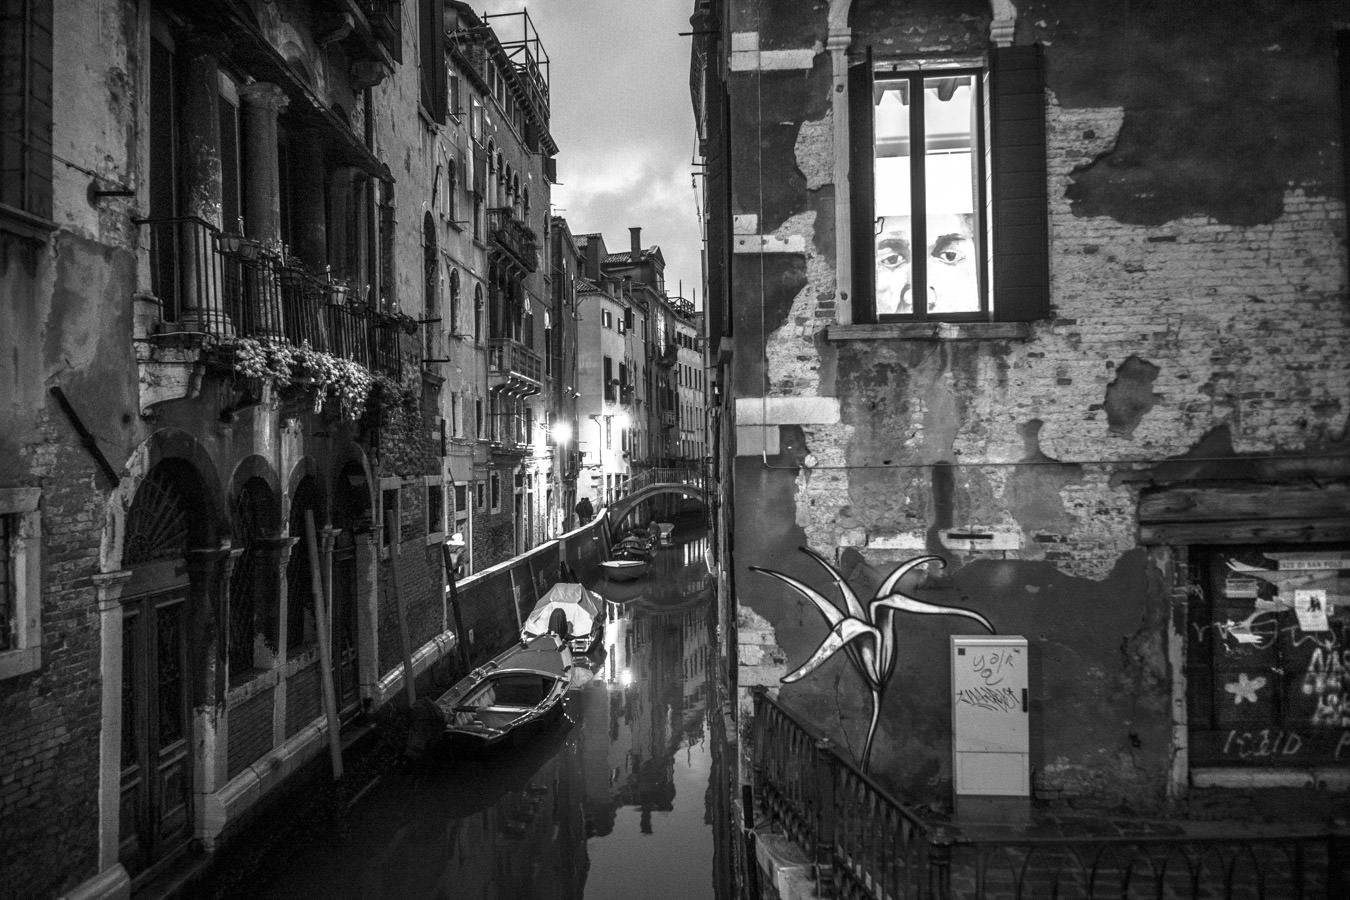 An hidden canal during the first Photo Tour in Venice on the 1st January 2018